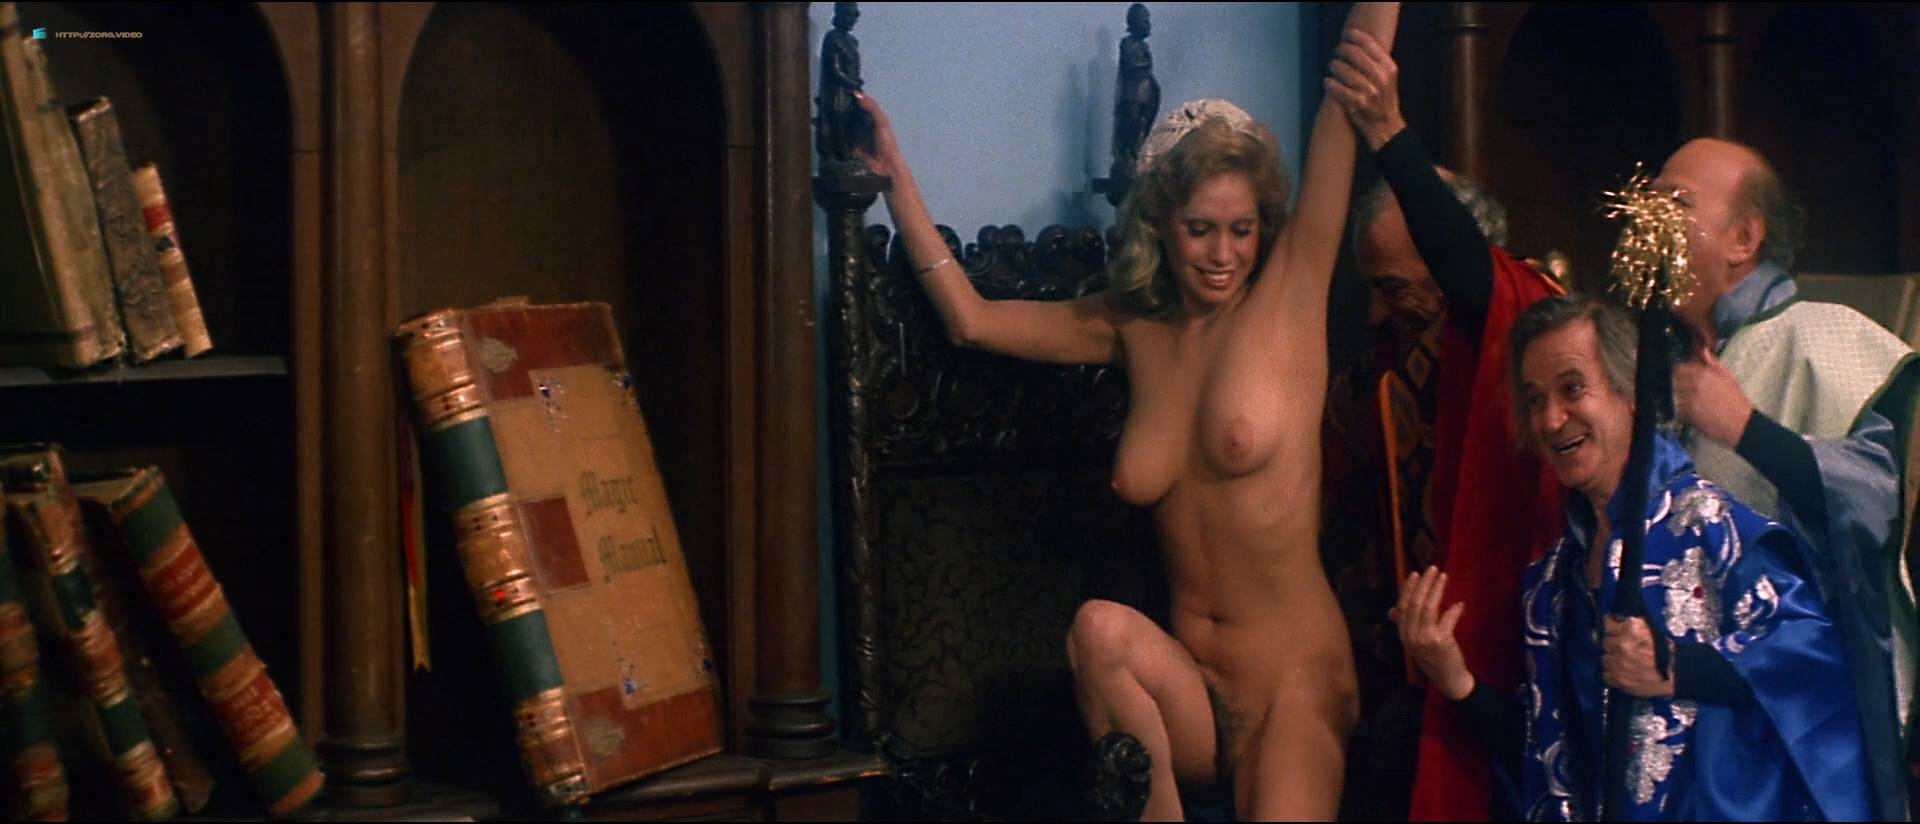 Linnea Quigley nude bush Angela Aames nude full frontal others nude - Fairy Tales (1978) HD 1080p (14)